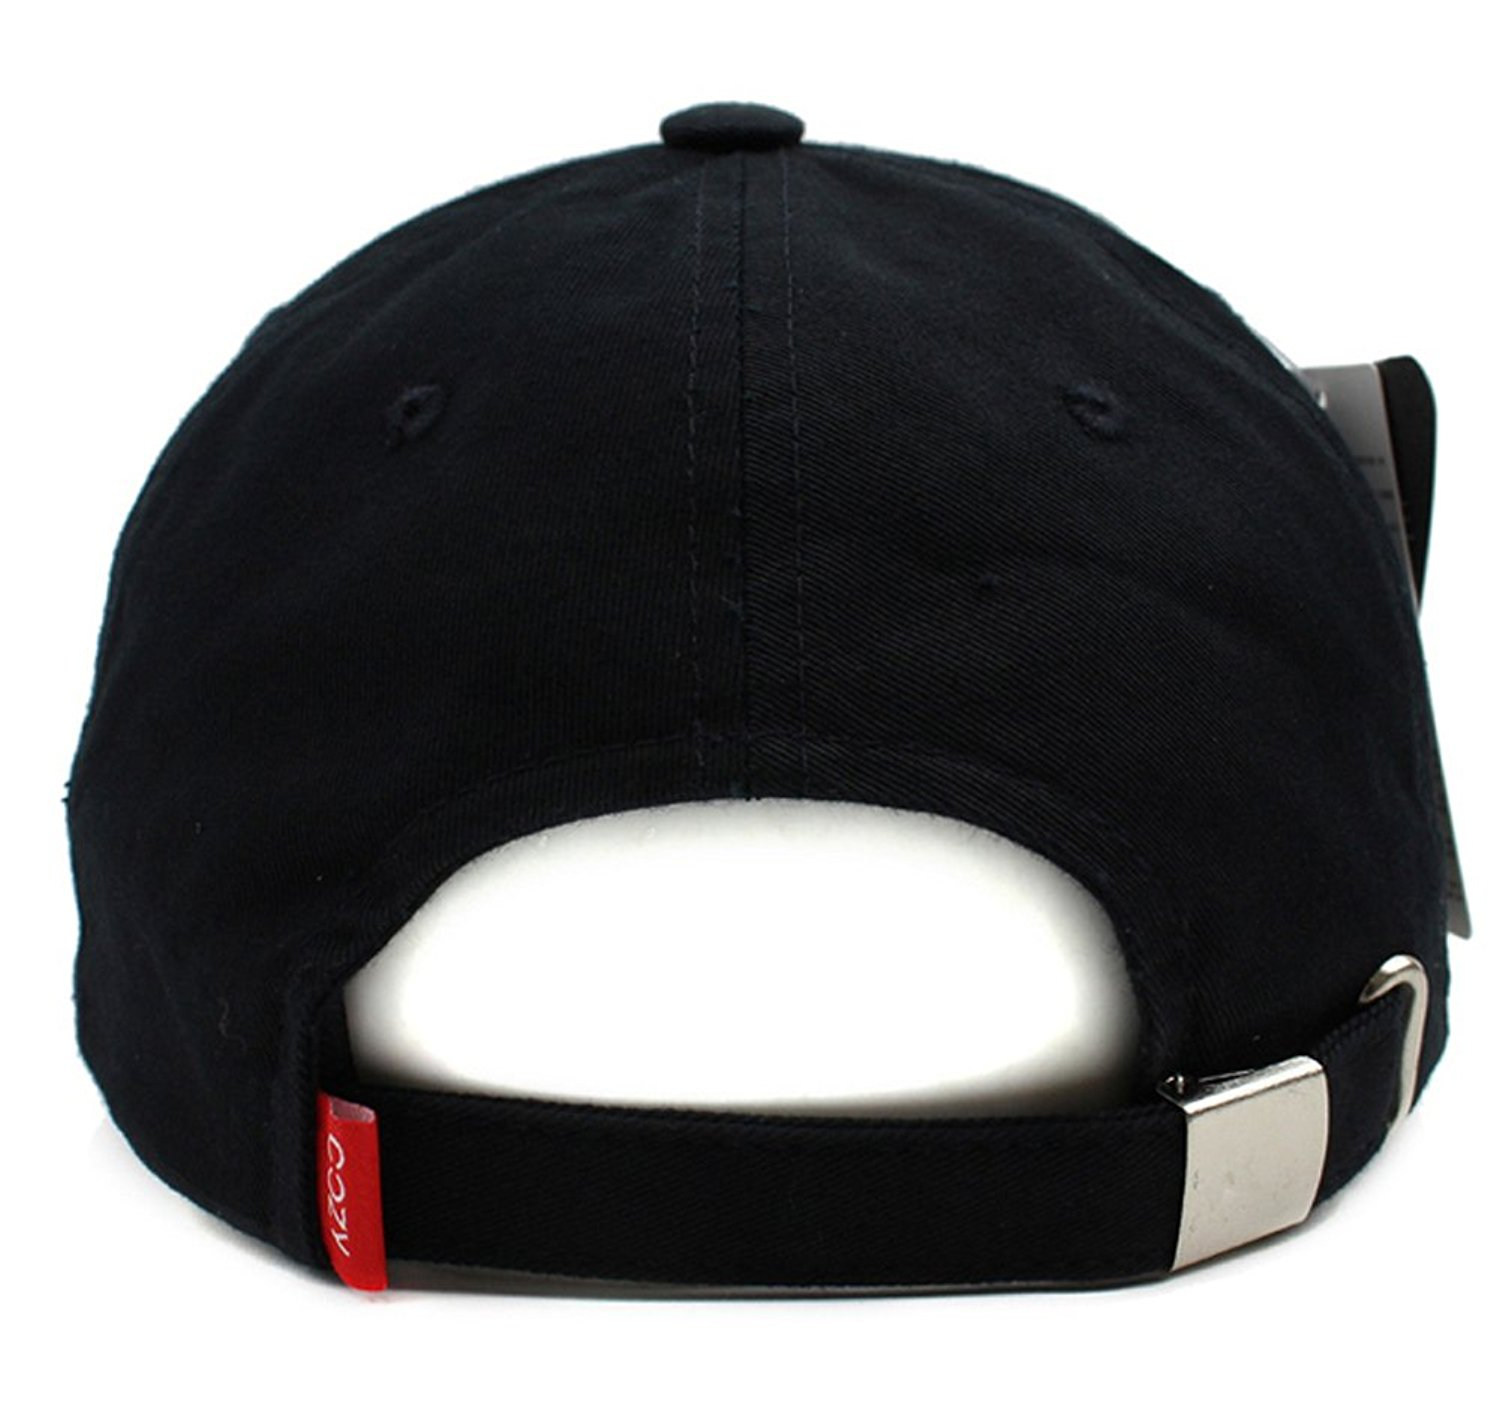 82635cb69 Unisex 4 Rings Pierced Mens Baseball Cap Adjustable Size K-Pop Hip Hop Hat  Trucker from smit